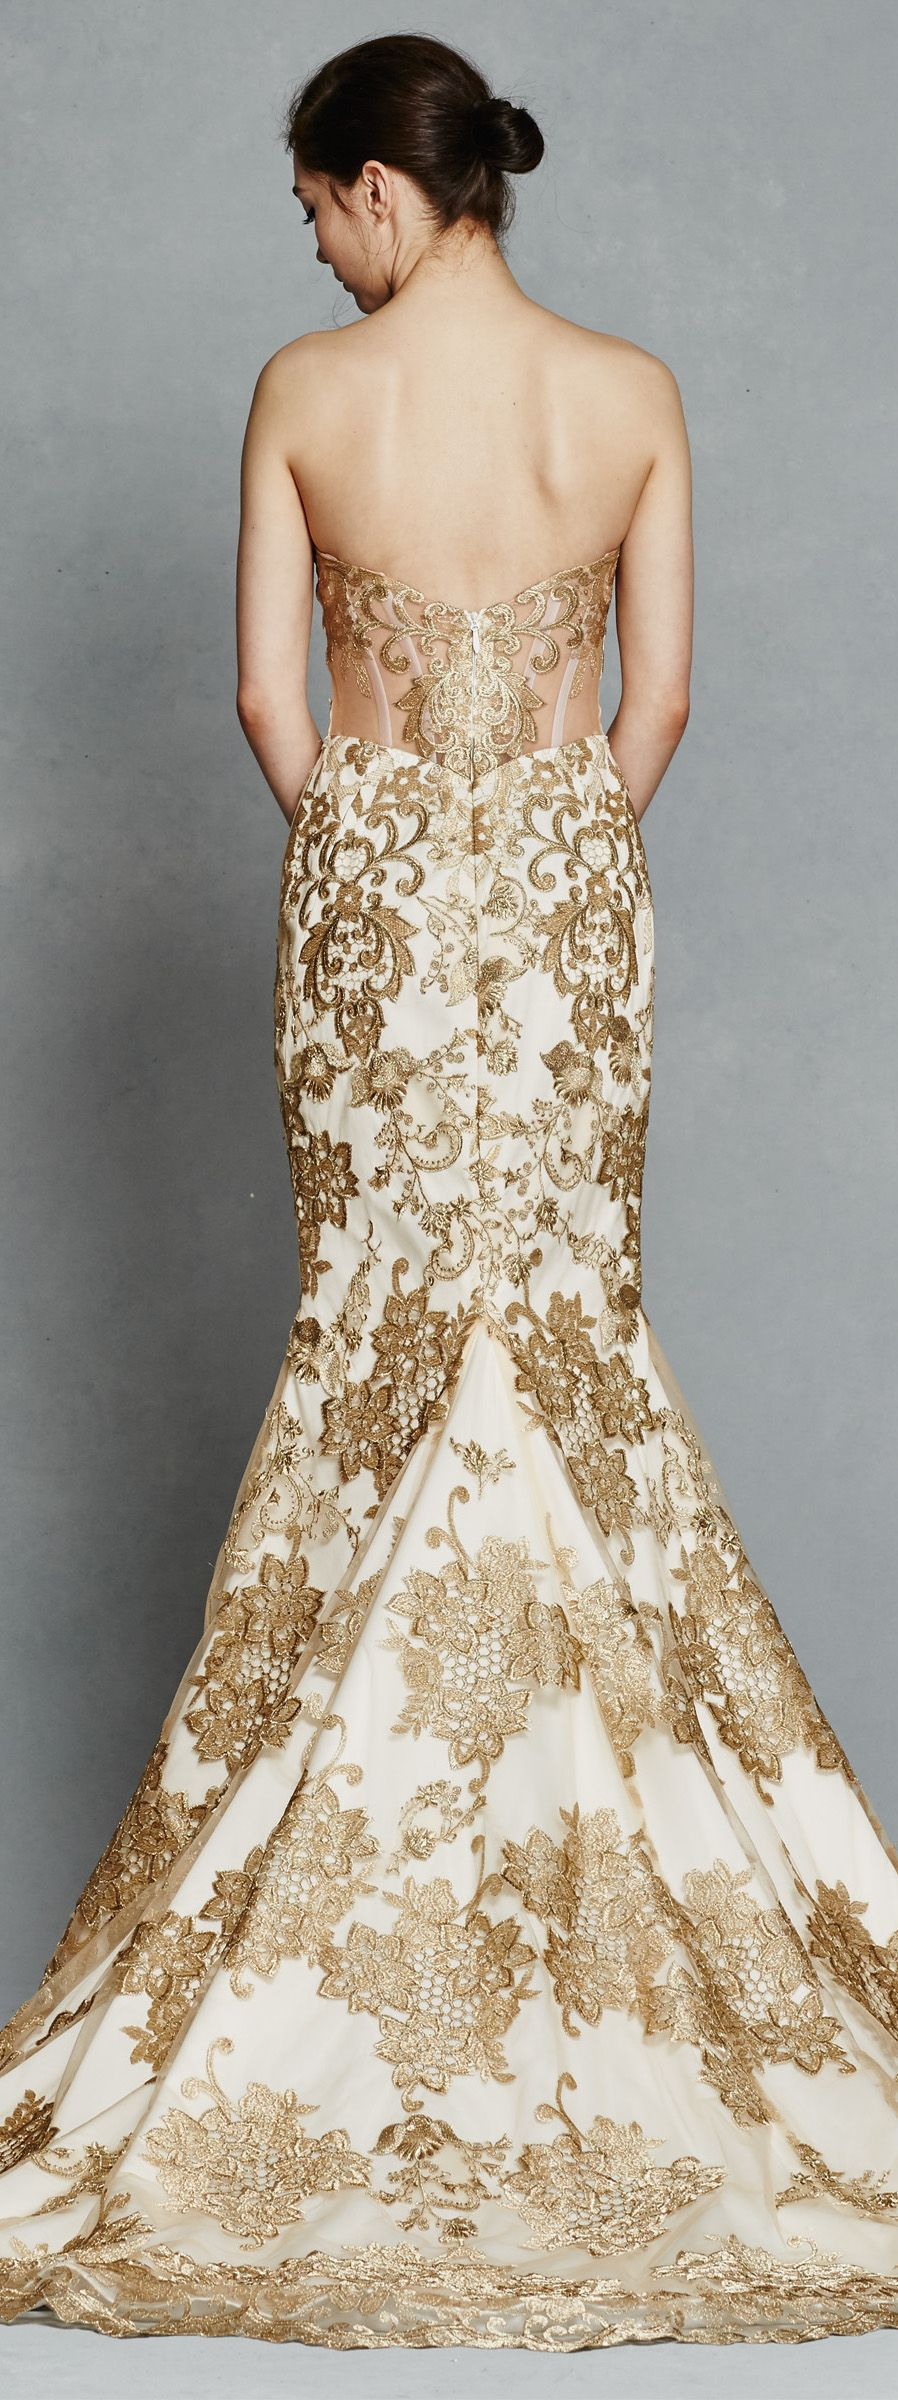 Gold wedding dress by kelly faetanini dresses pinterest gold